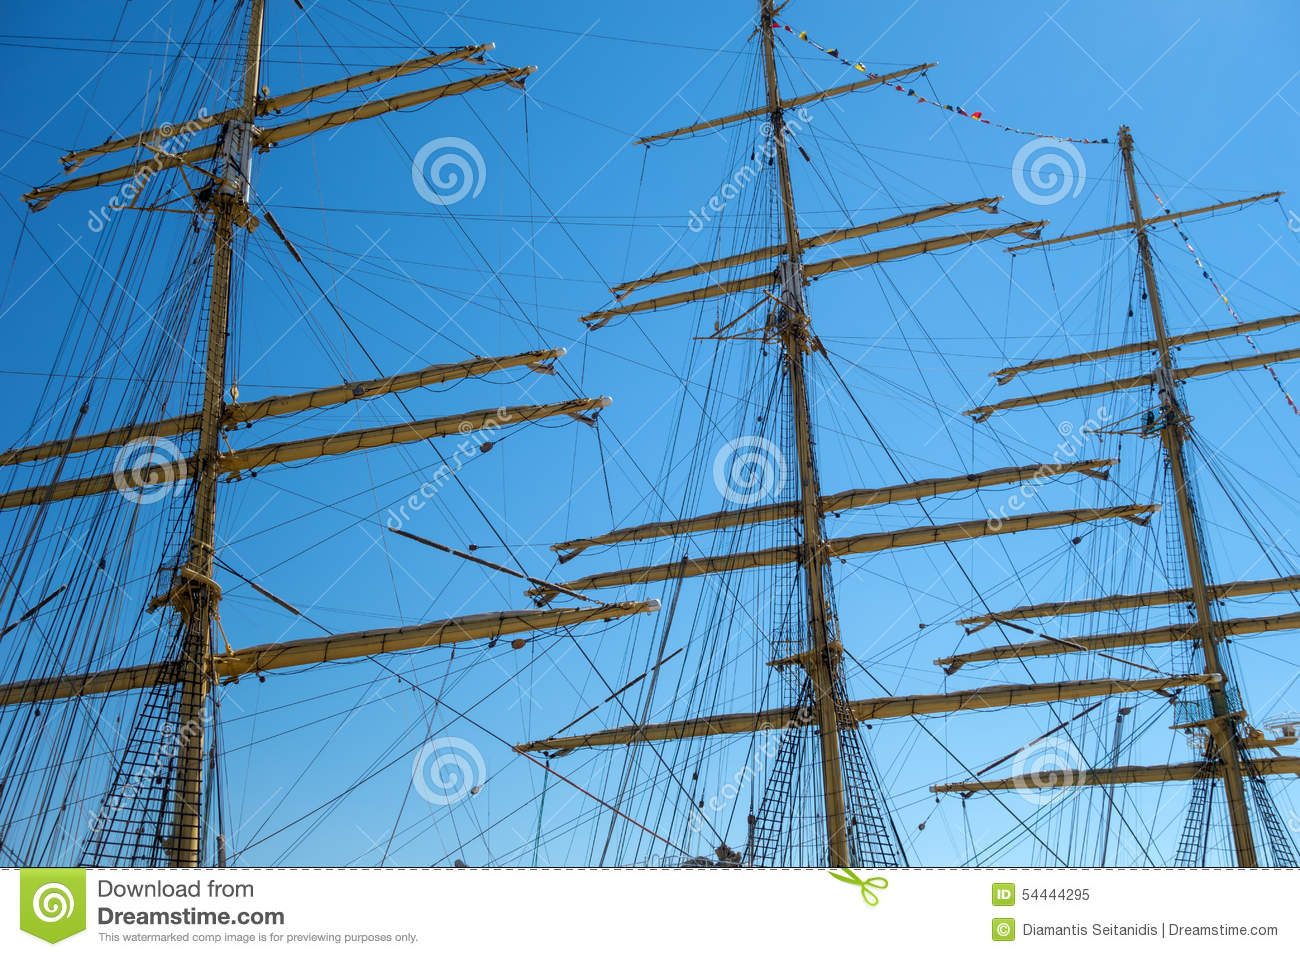 Marine Rope Ladder At Pirate Ship Stock Image - Image: 54444295 for Rope Ladder Ship  110ylc